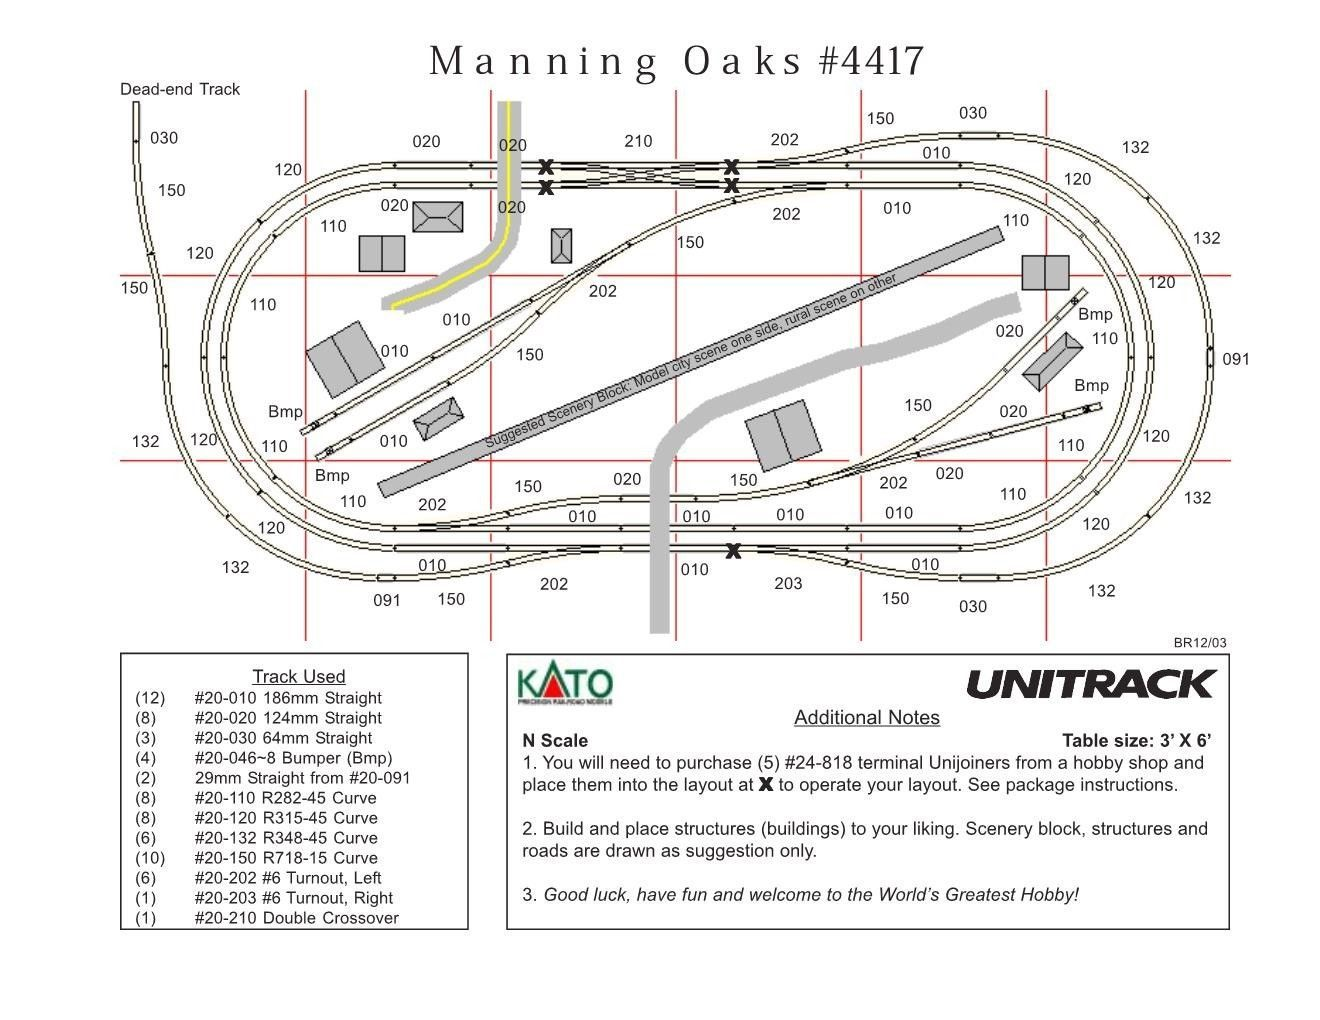 Kato N Scale Manning Oaks Unitrack Track Layout Train